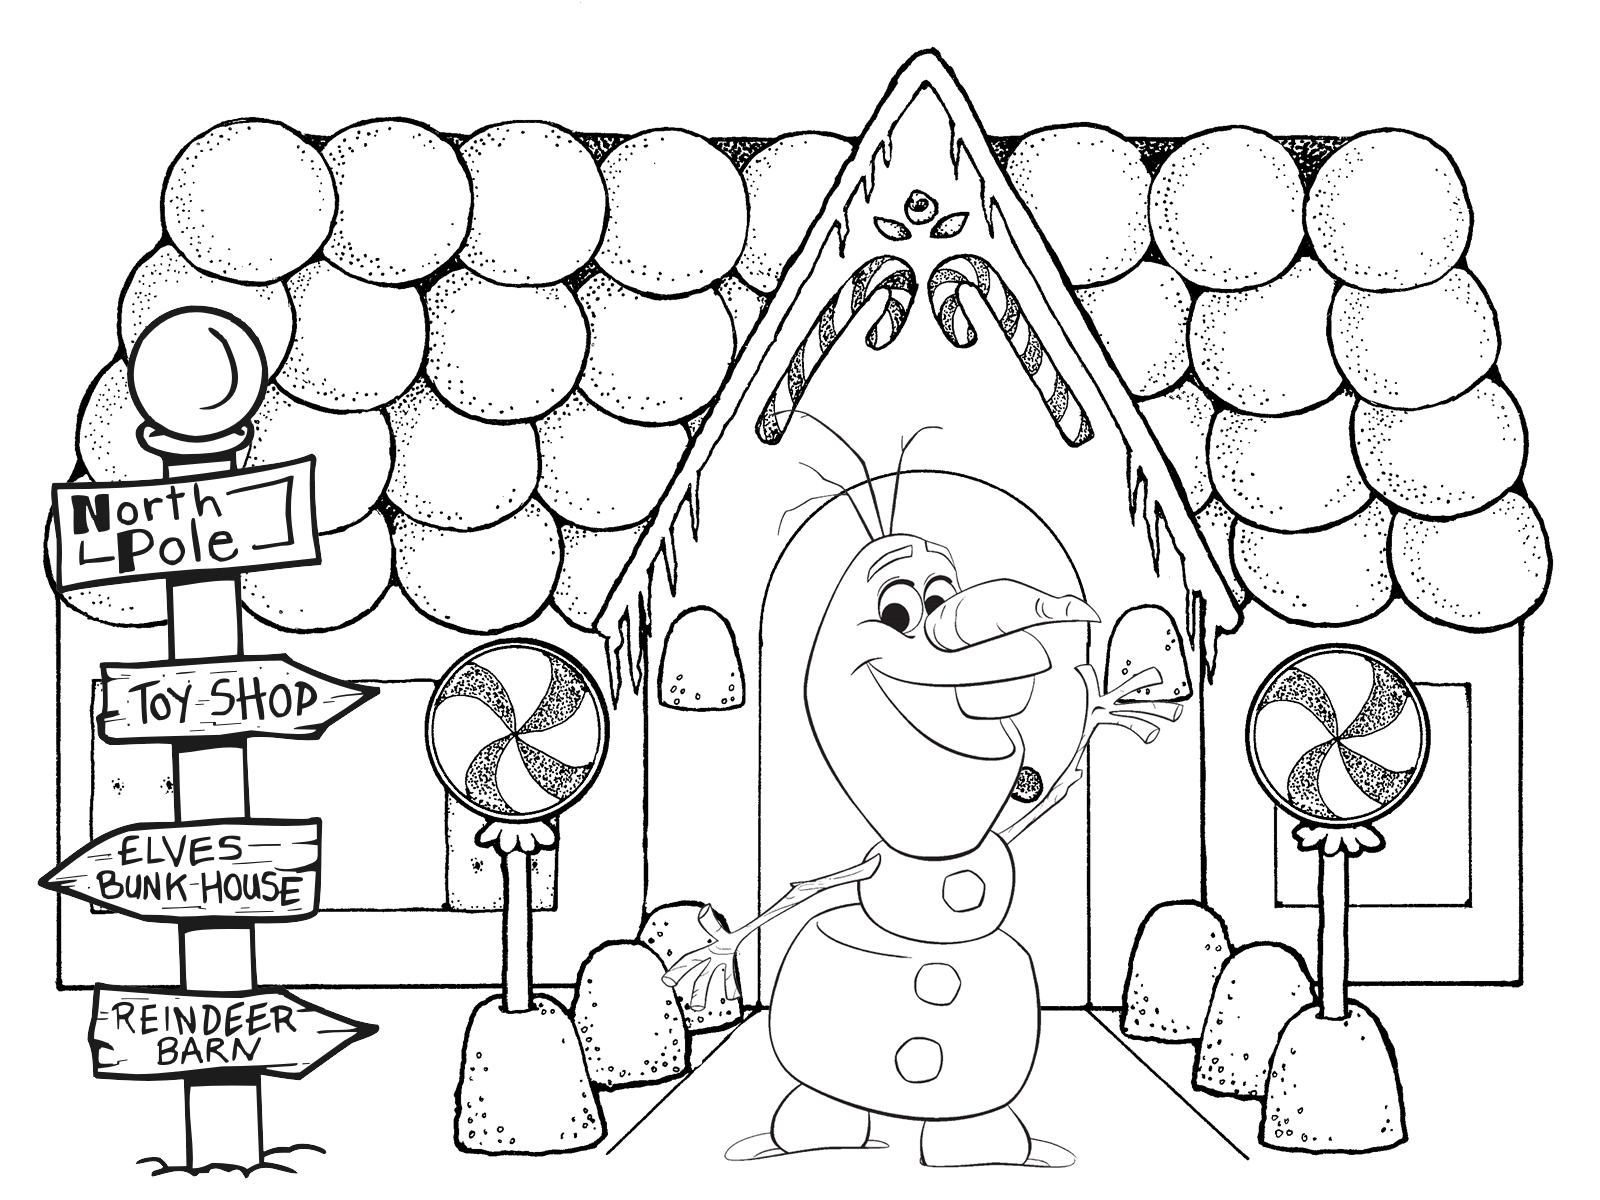 Gingerbread house coloring pages printable coloring home for Gingerbread house coloring pages